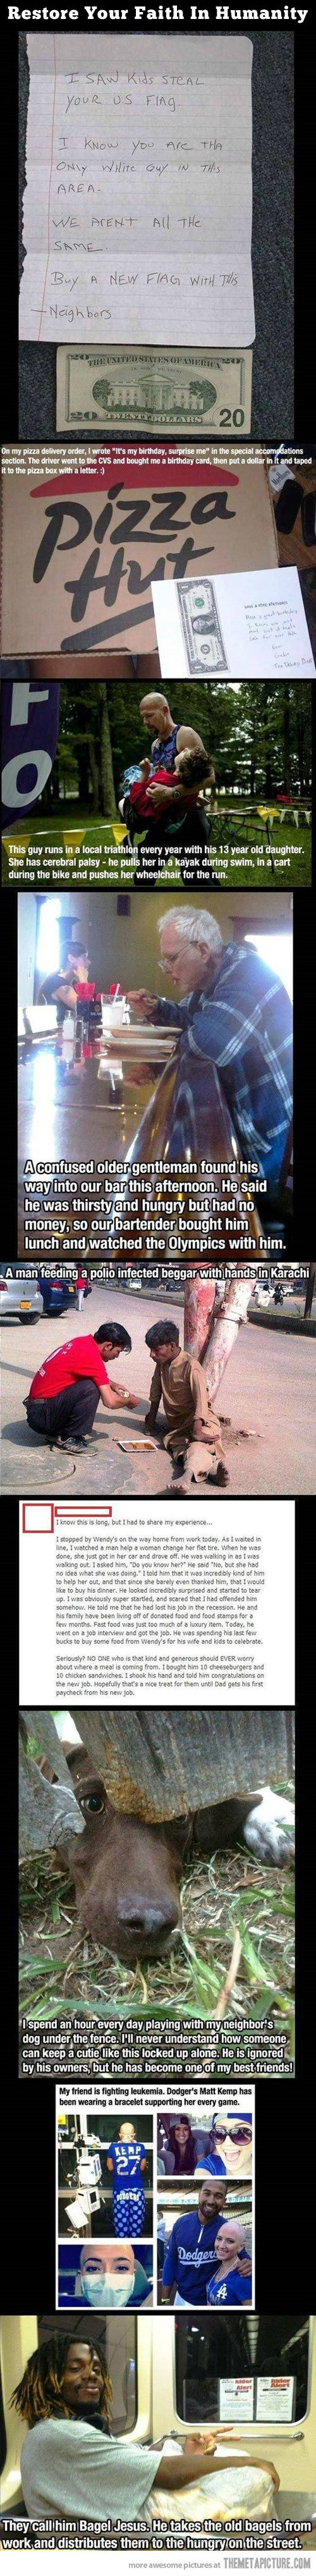 Humanity is not lost yet…